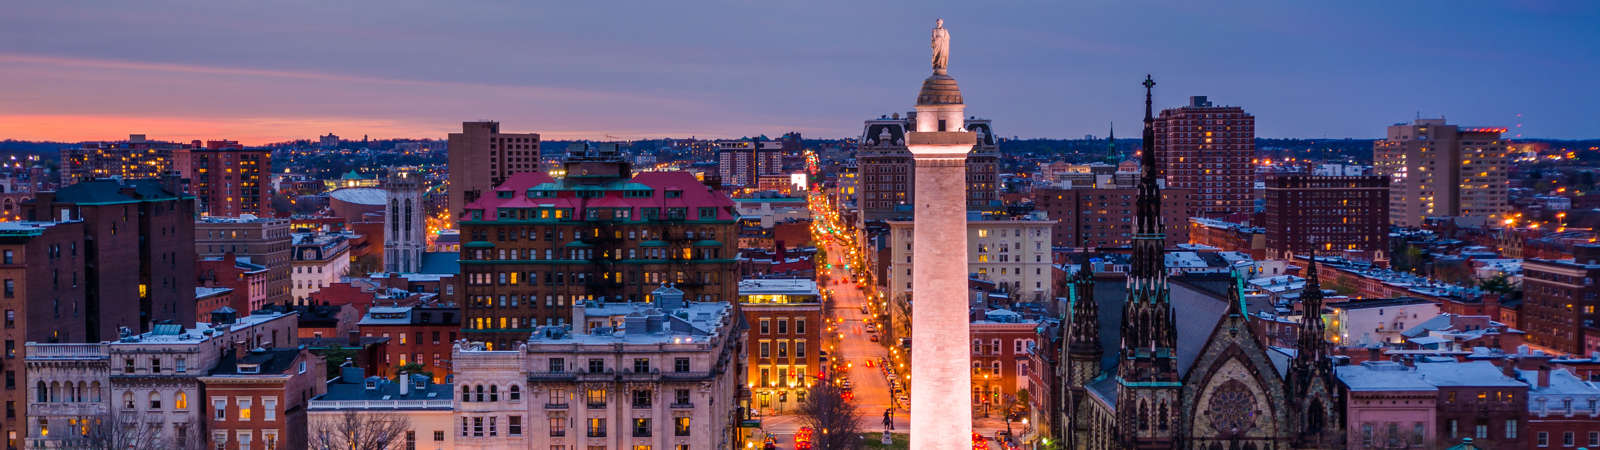 Top Of Washington Monument In Mount Vernon Place Baltimore